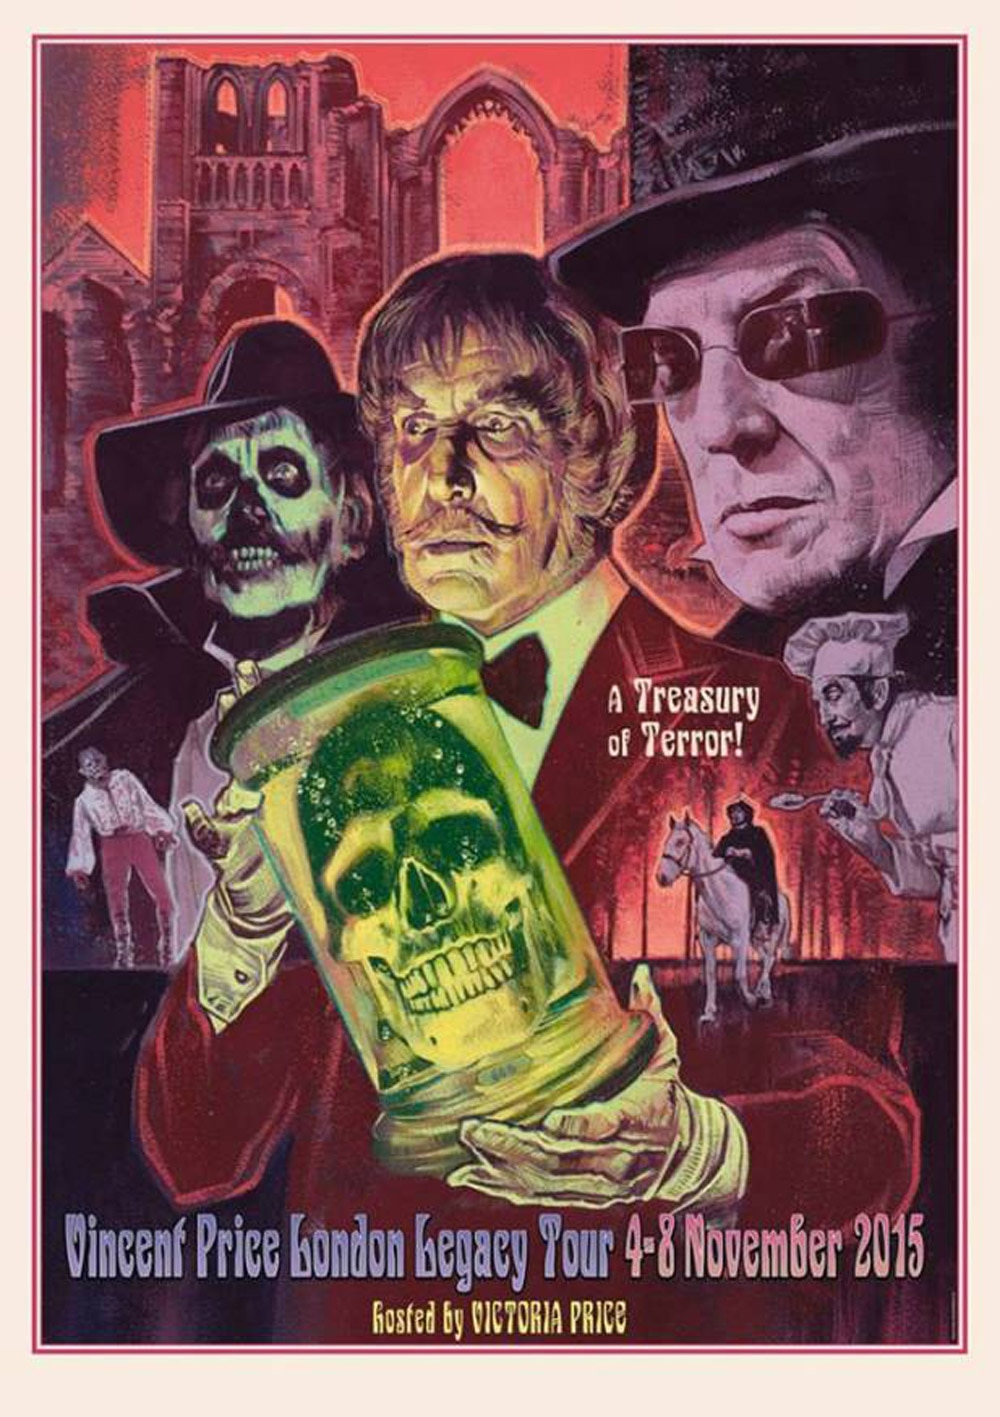 Artist Graham Humphreys' artwork for the Vincent Price Legacy Tour.